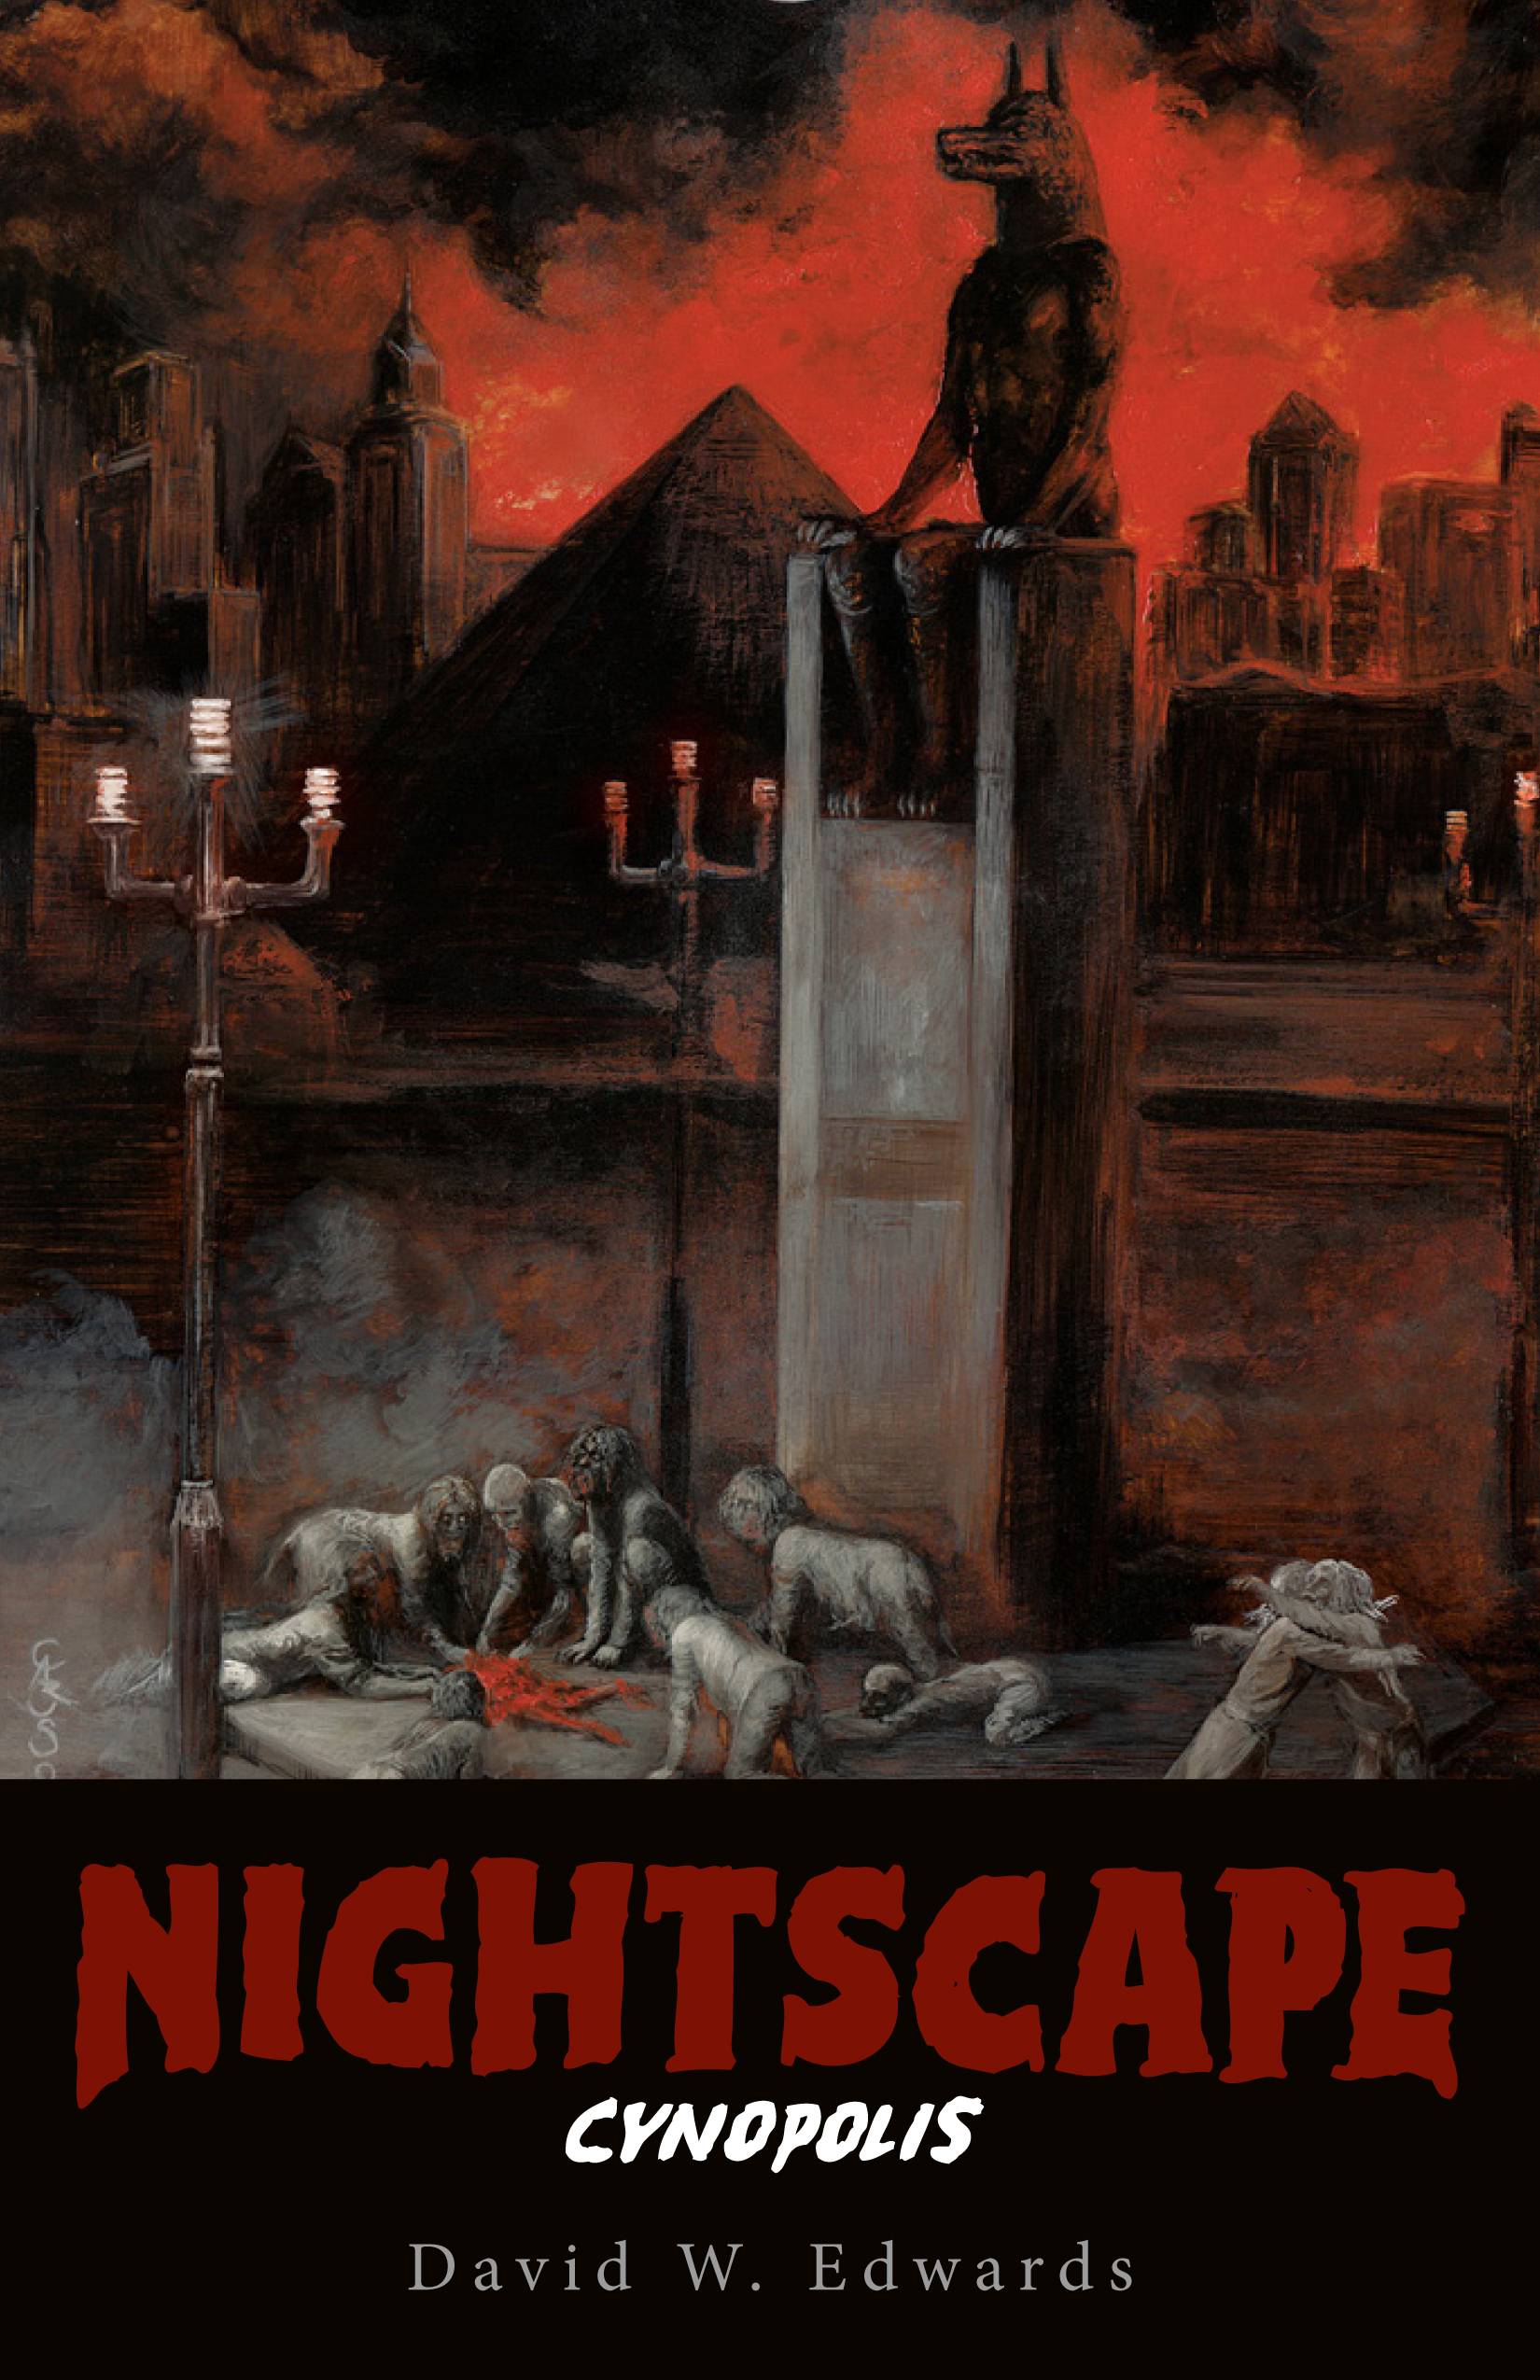 Nightscape_Cynopolis_FrontCover_Final.jpg